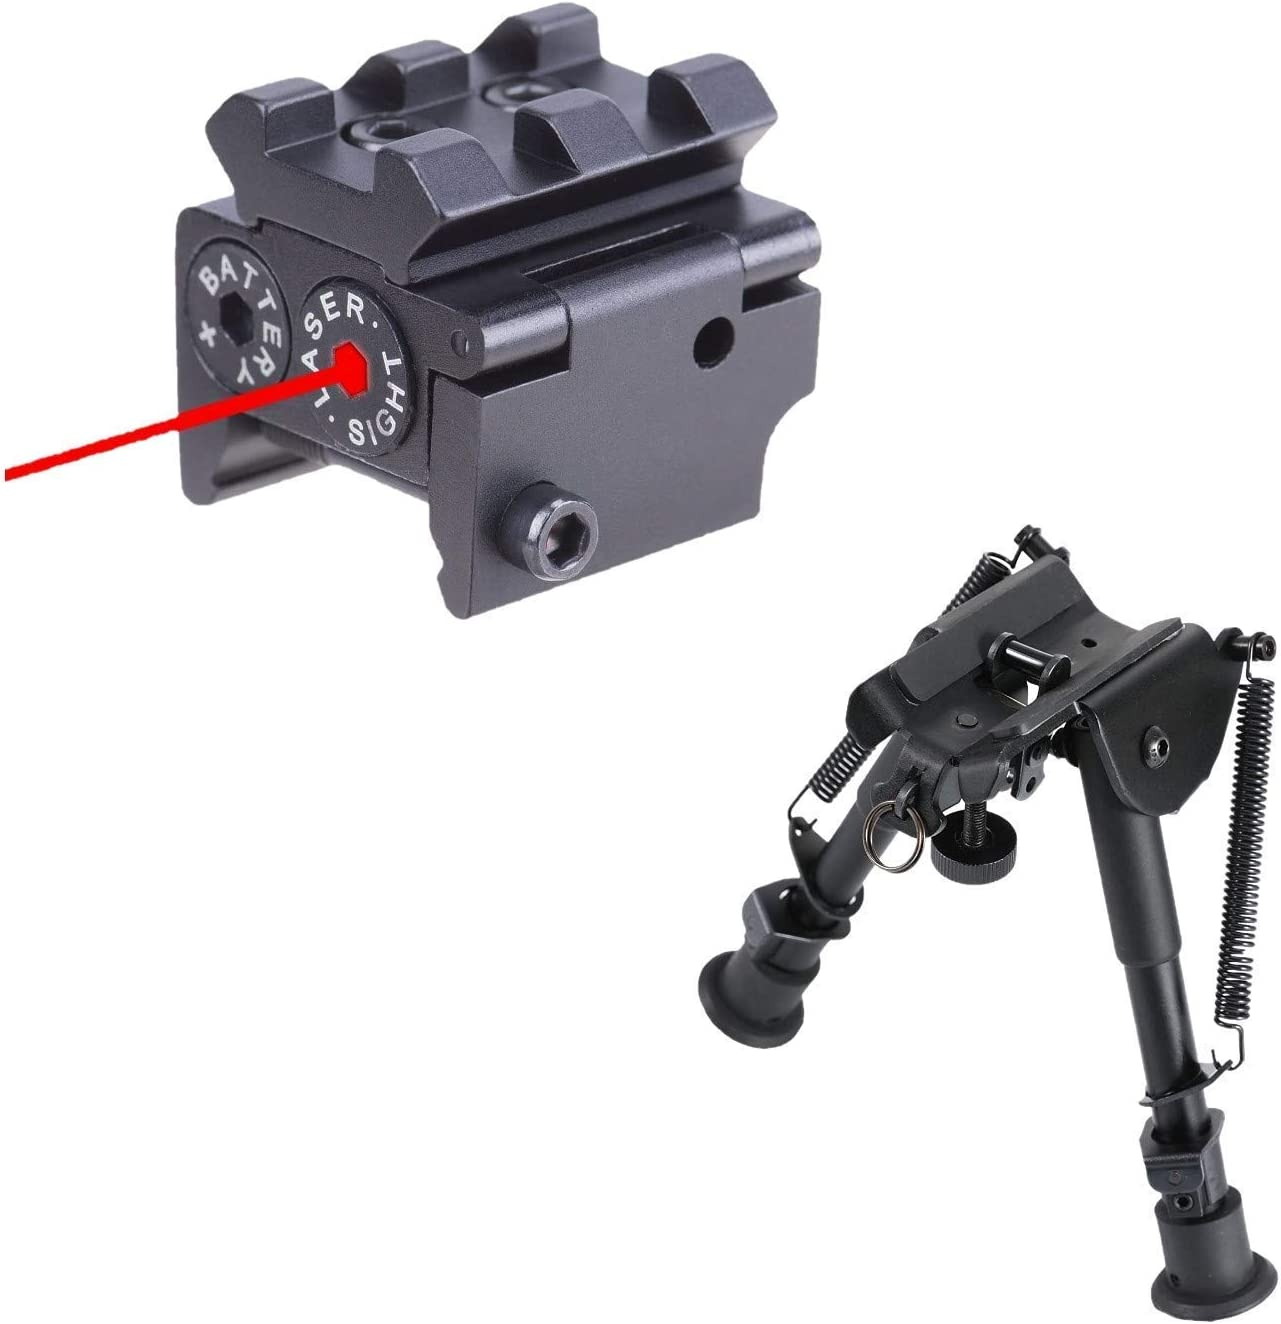 Pinty Red Laser Red Dot Sight Waterproof Military Grade Low Profile Compact & Tactical Rifle Bipod Keymod System Adjustable 6-9 Inch Height